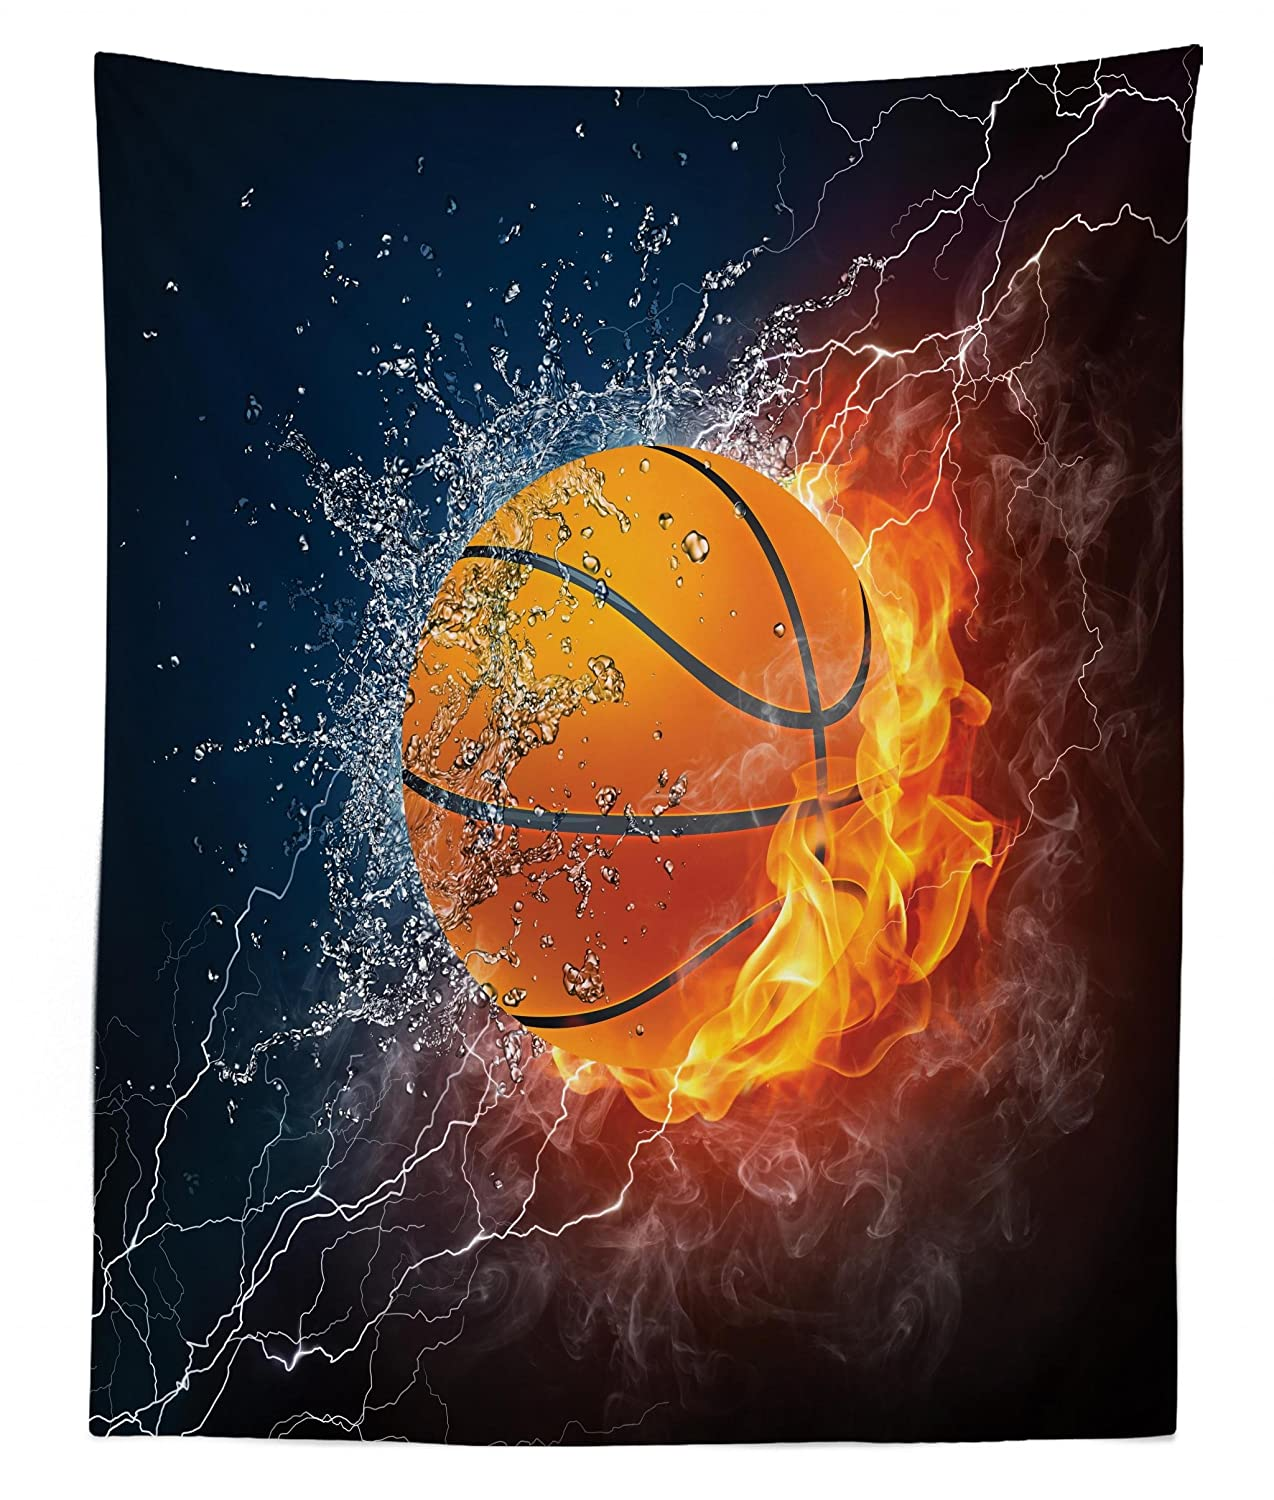 Wall Hanging Bedspread Bed Cover Wall Decor Lunarable Sports